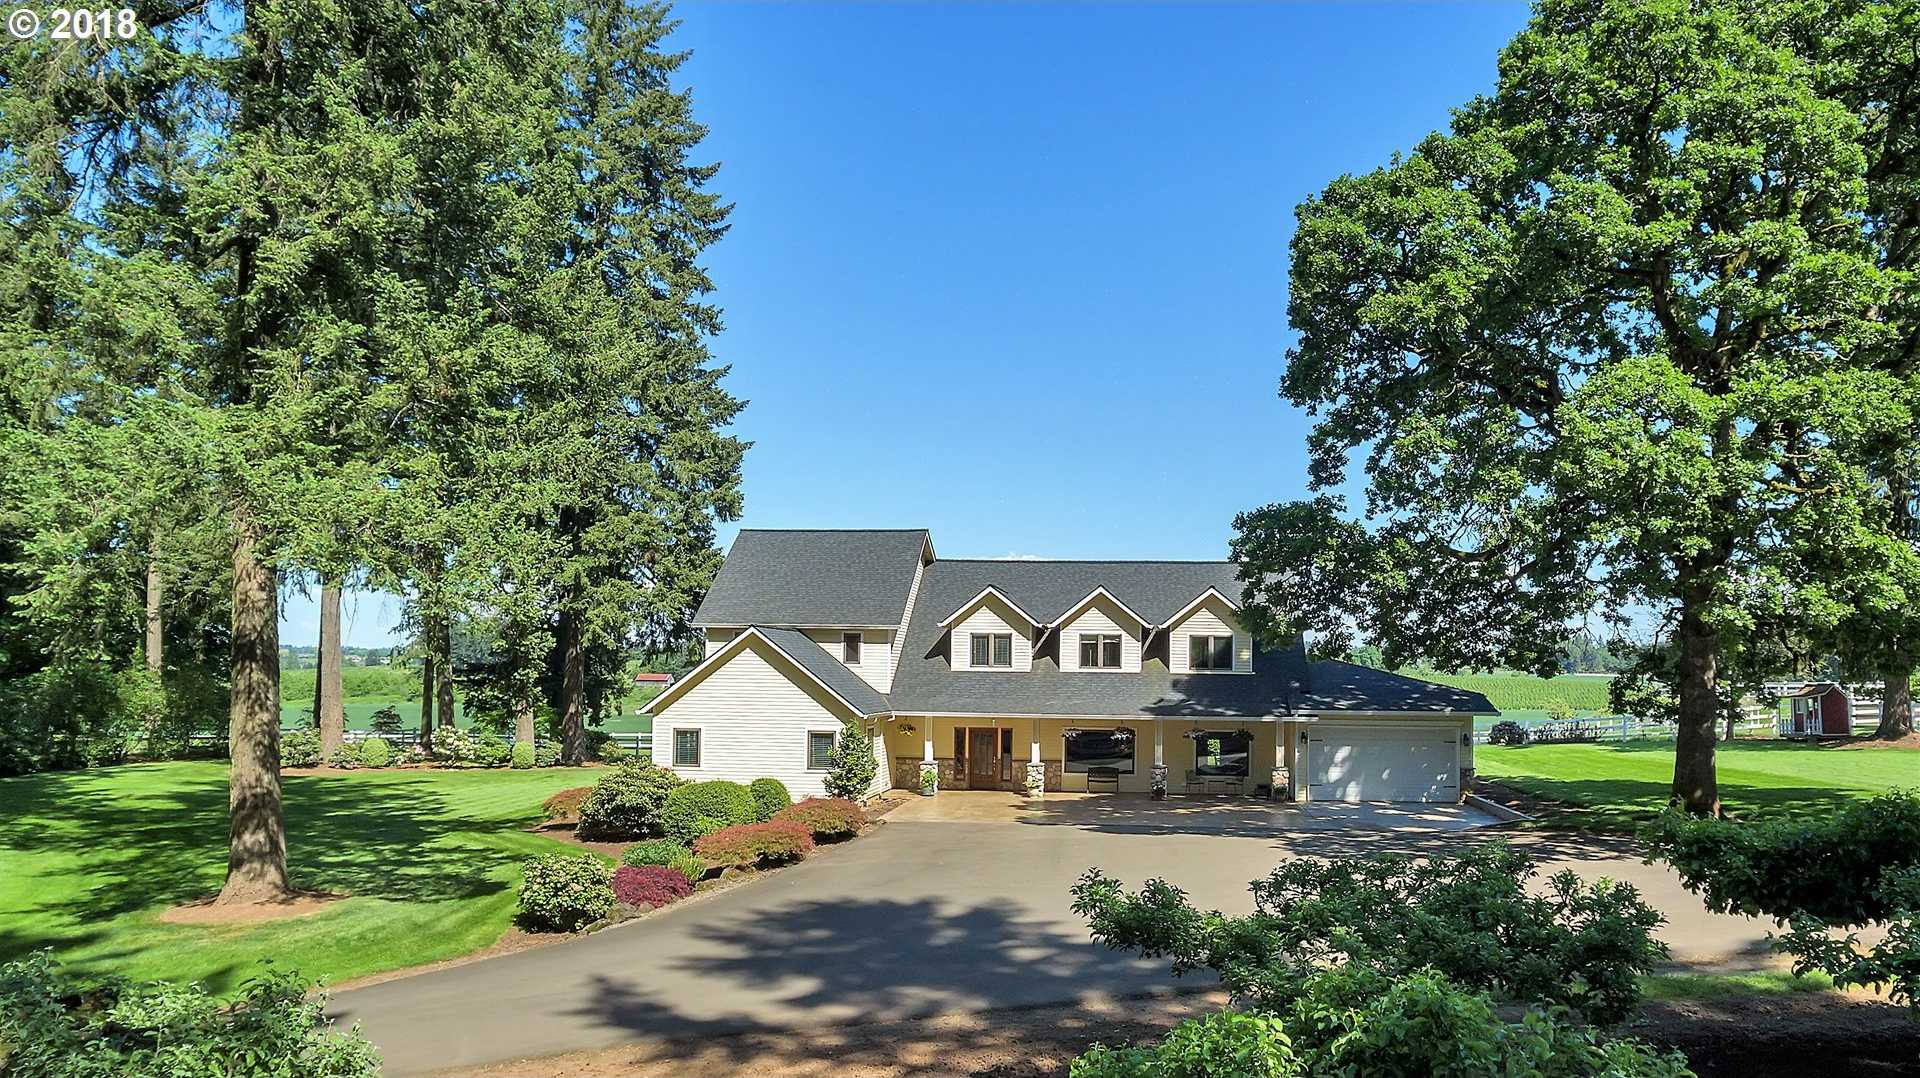 $1,549,000 - 6Br/5Ba -  for Sale in Tualatin